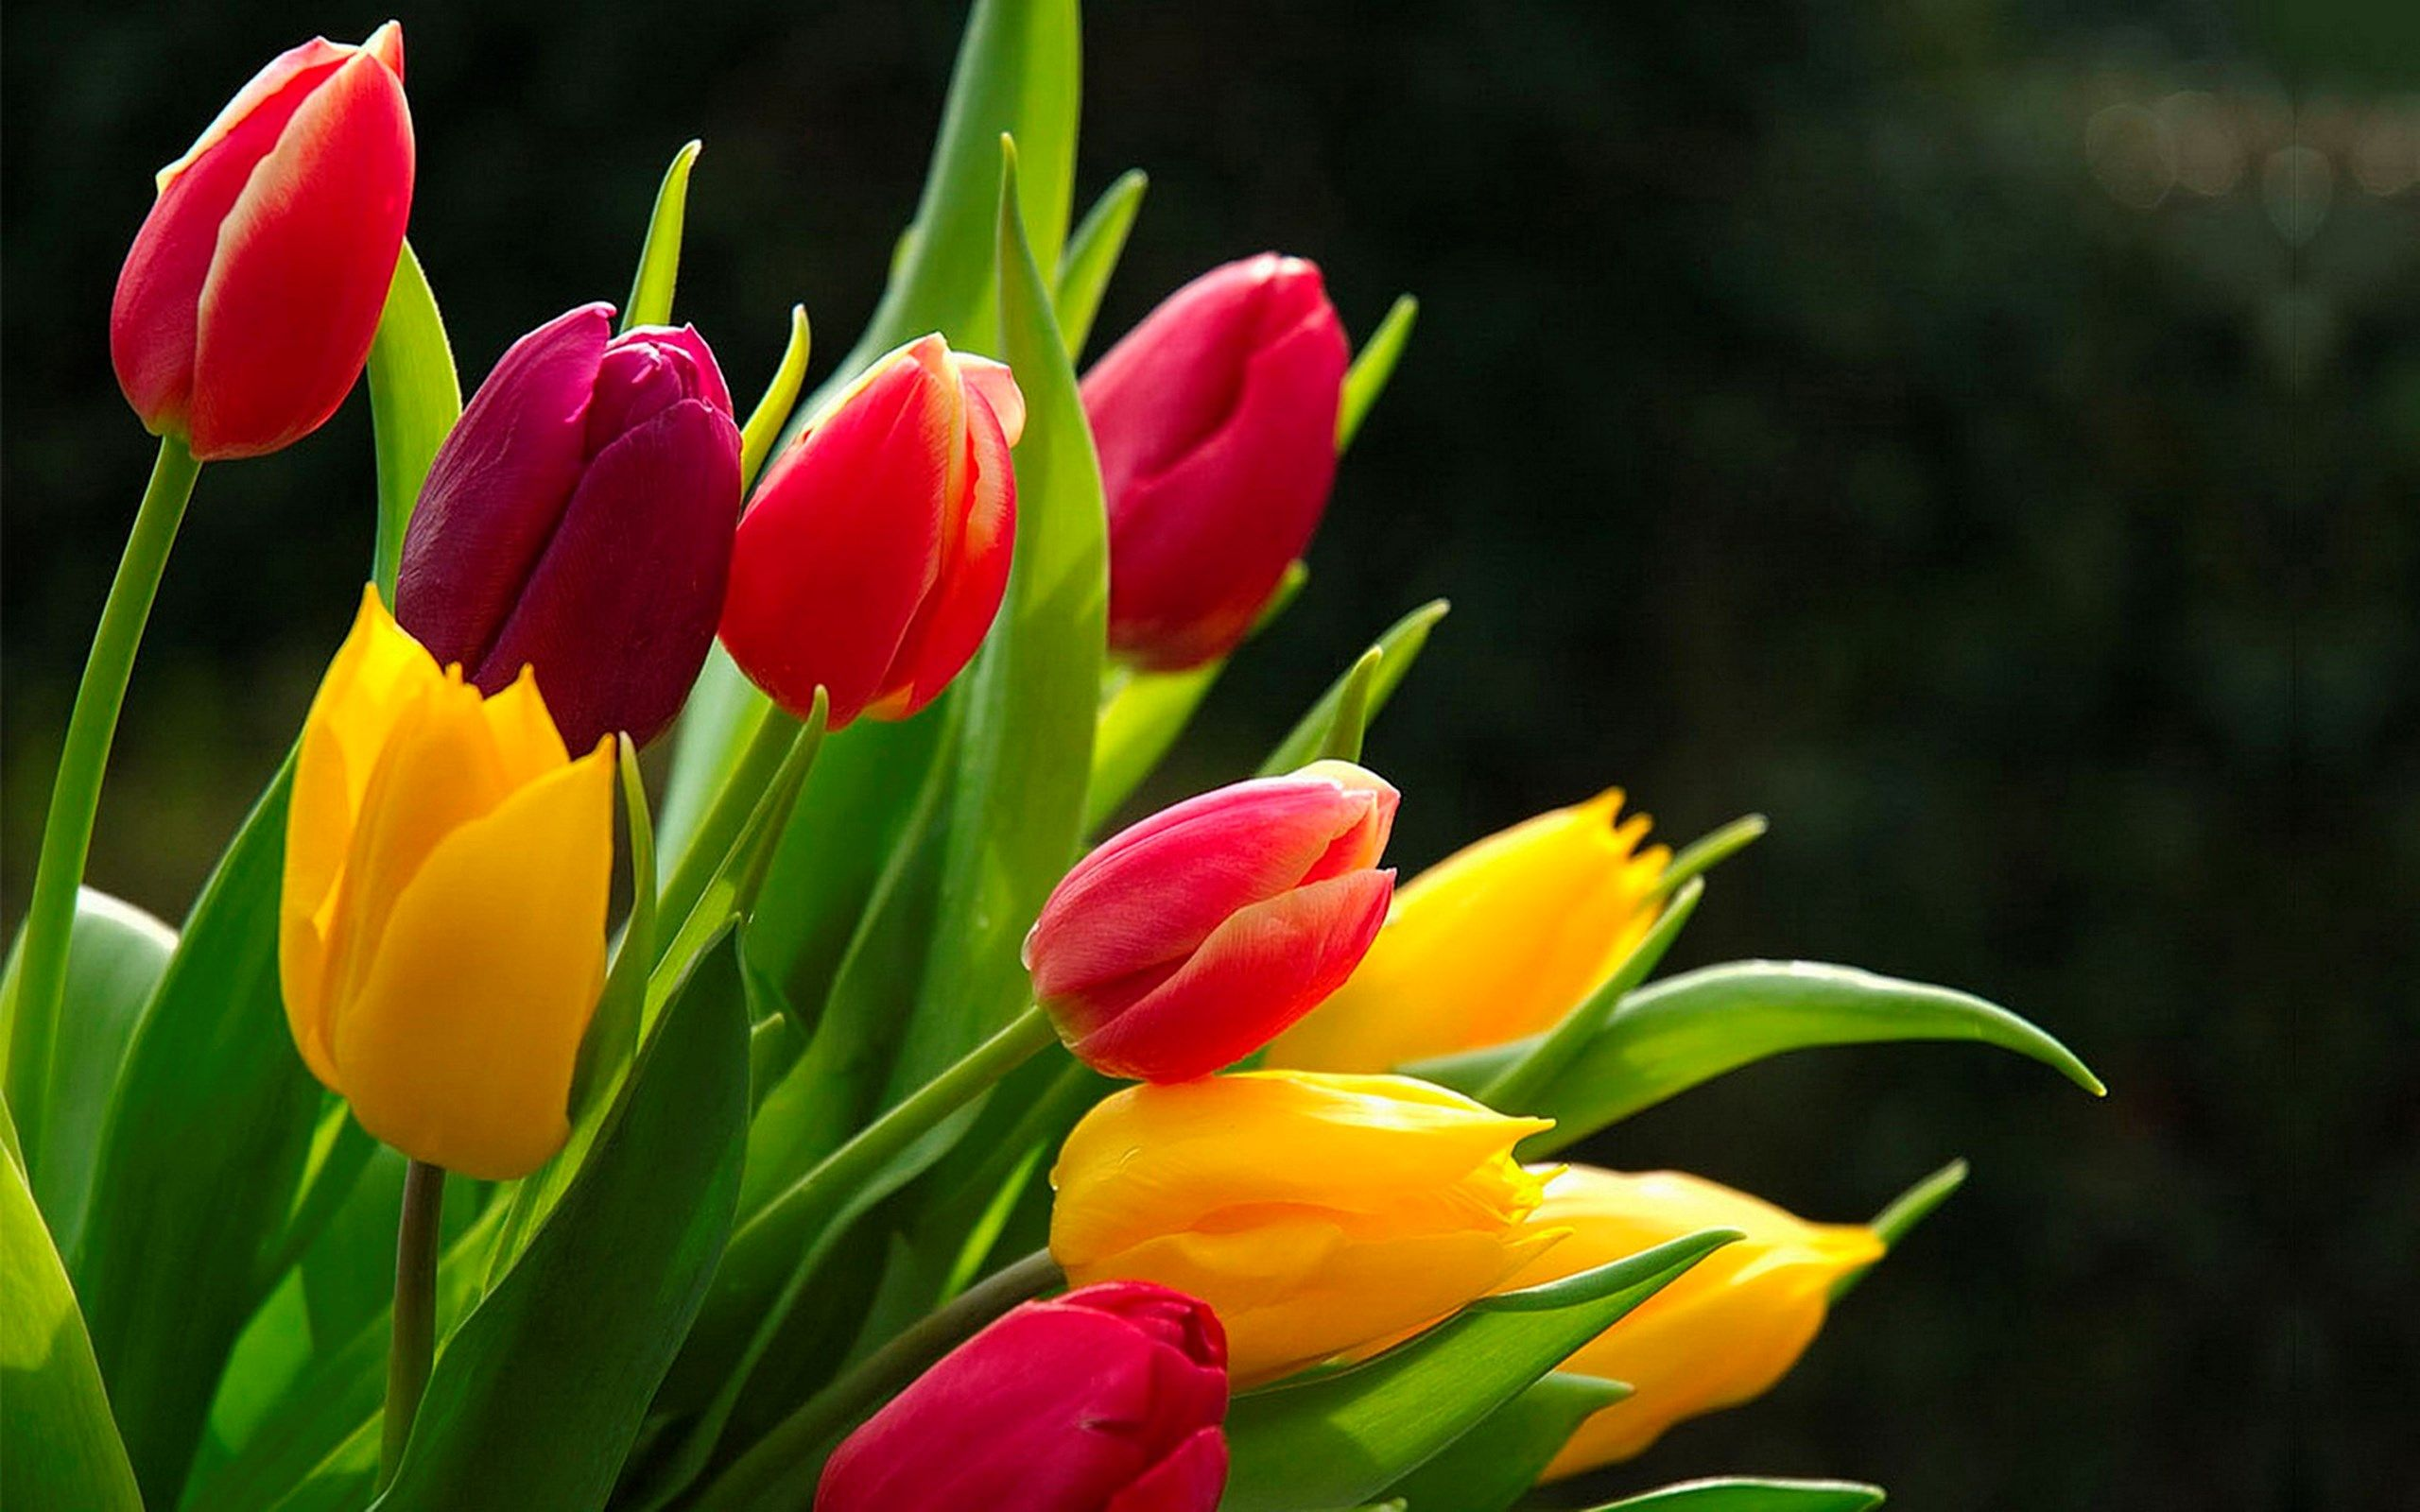 Tulip Picture To Download Hayward Chester 2560x1600